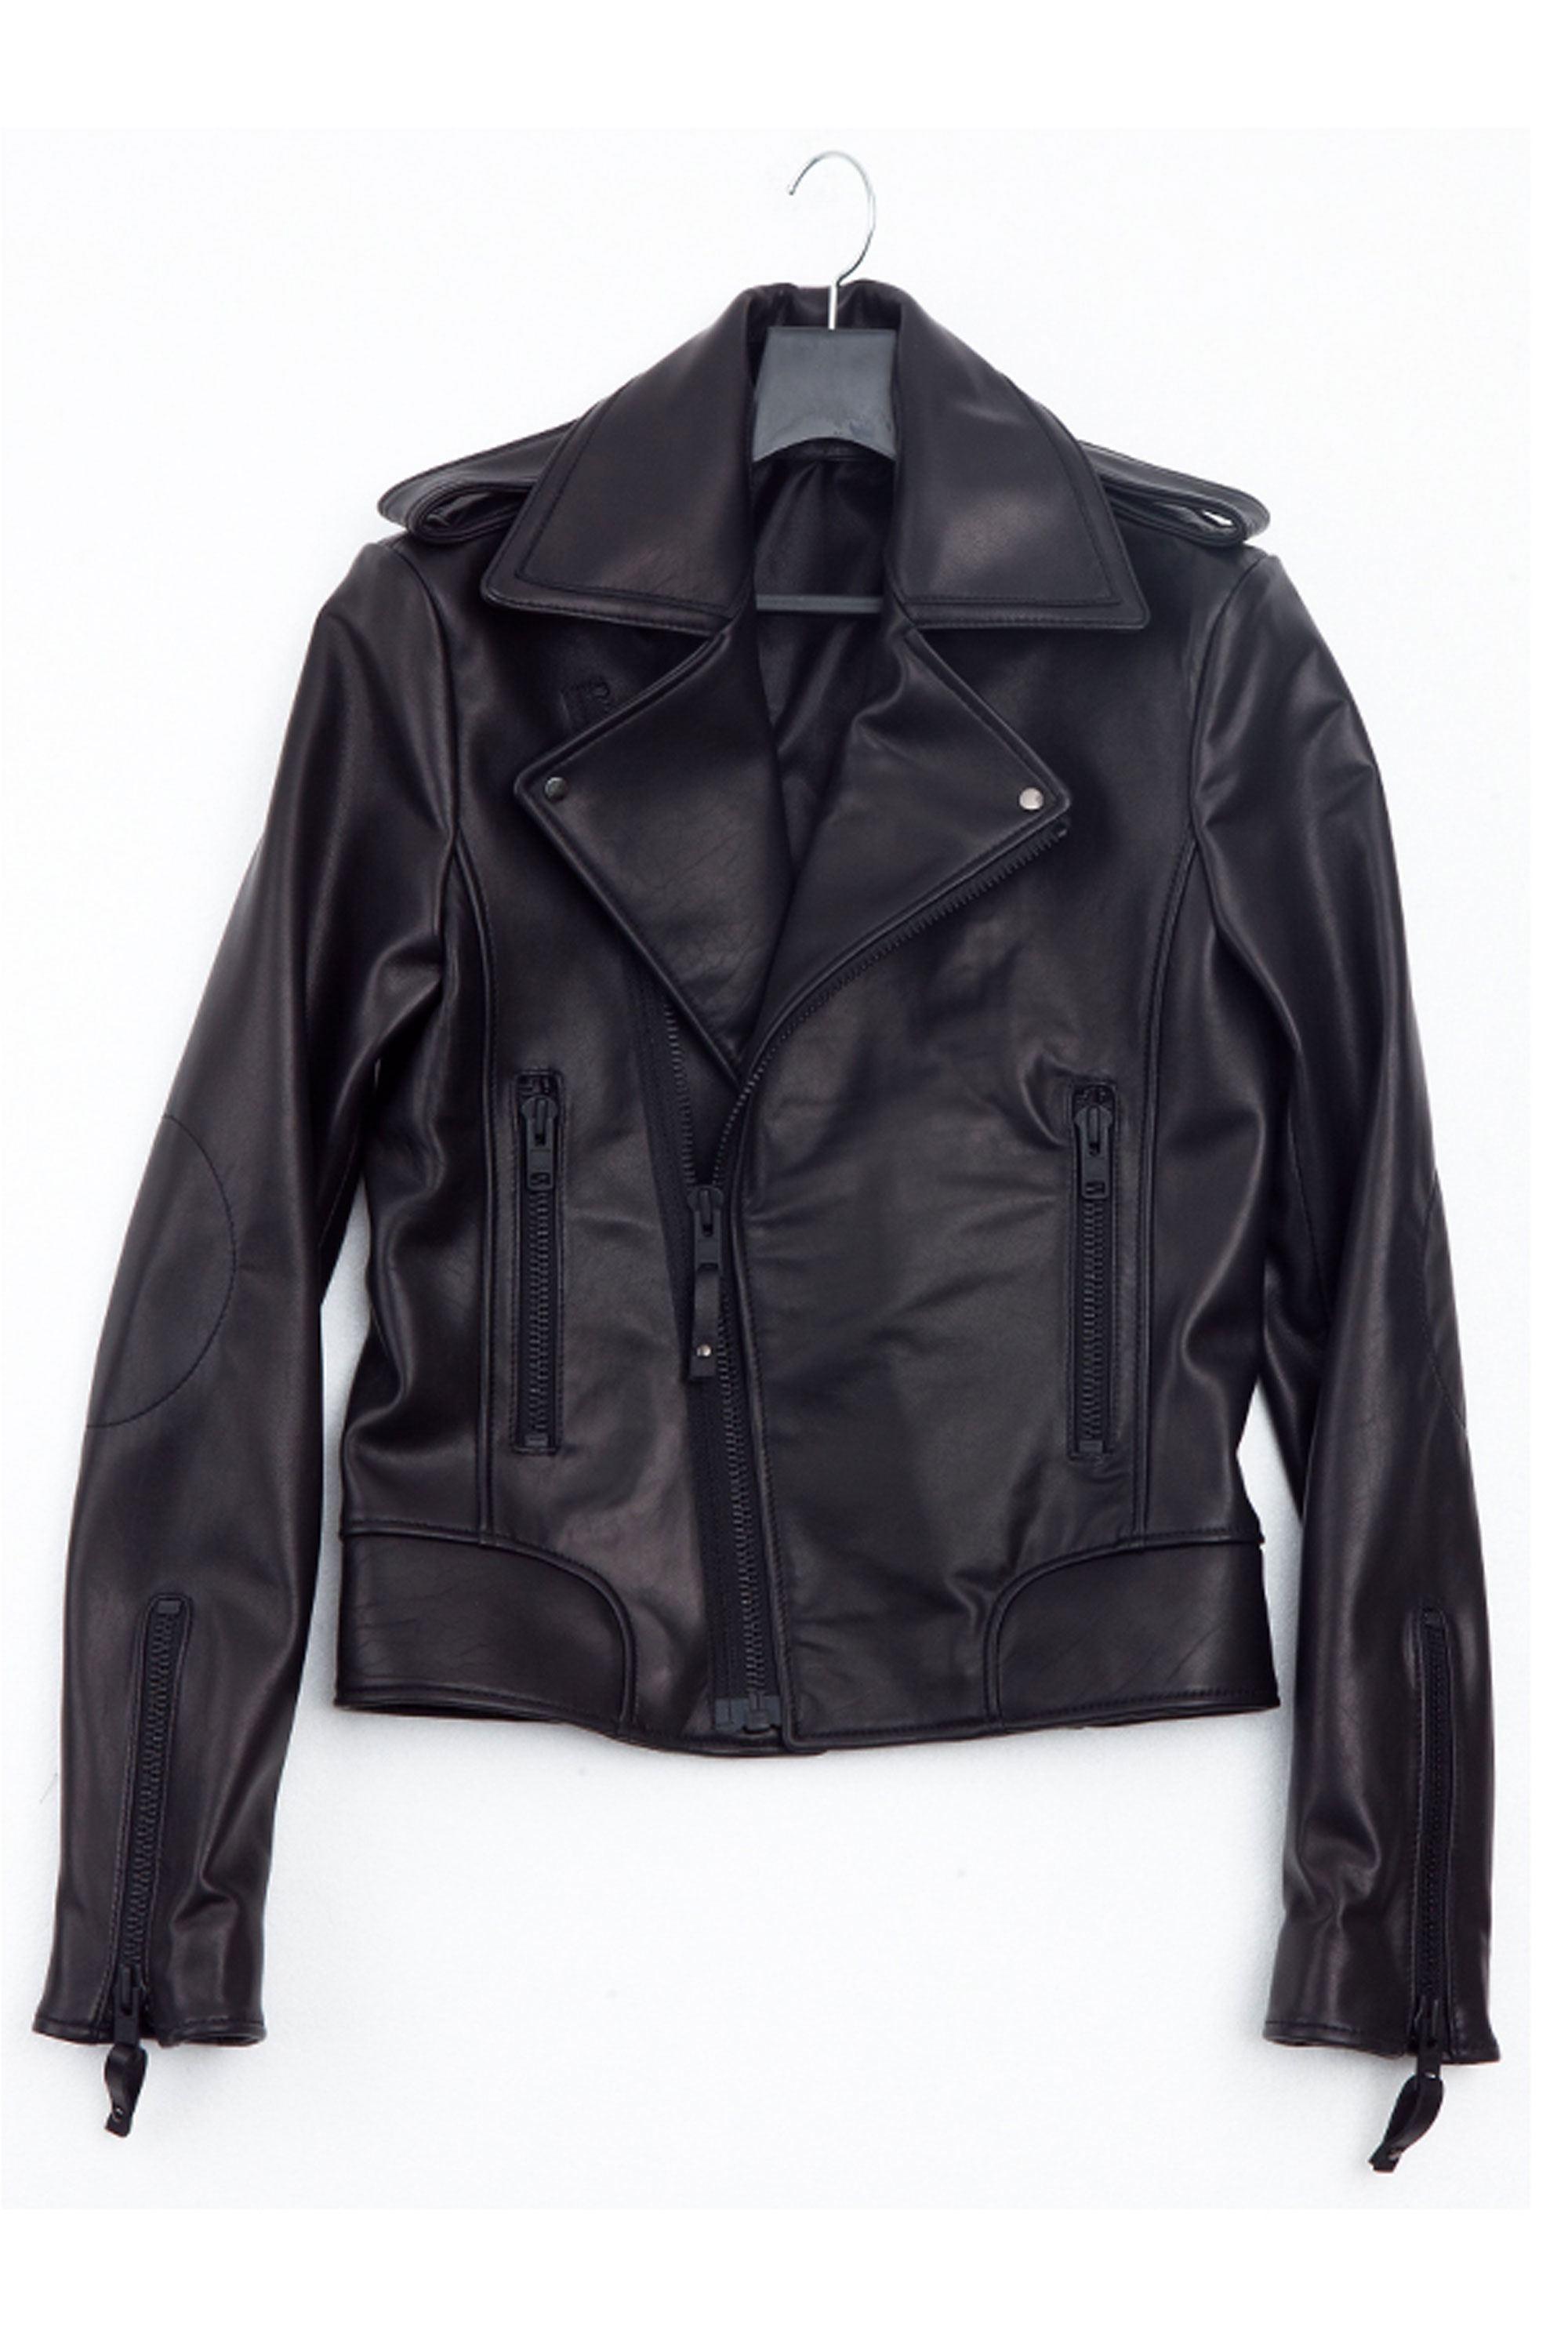 BLACK LEATHER RIDERS JACKET ykk 지퍼